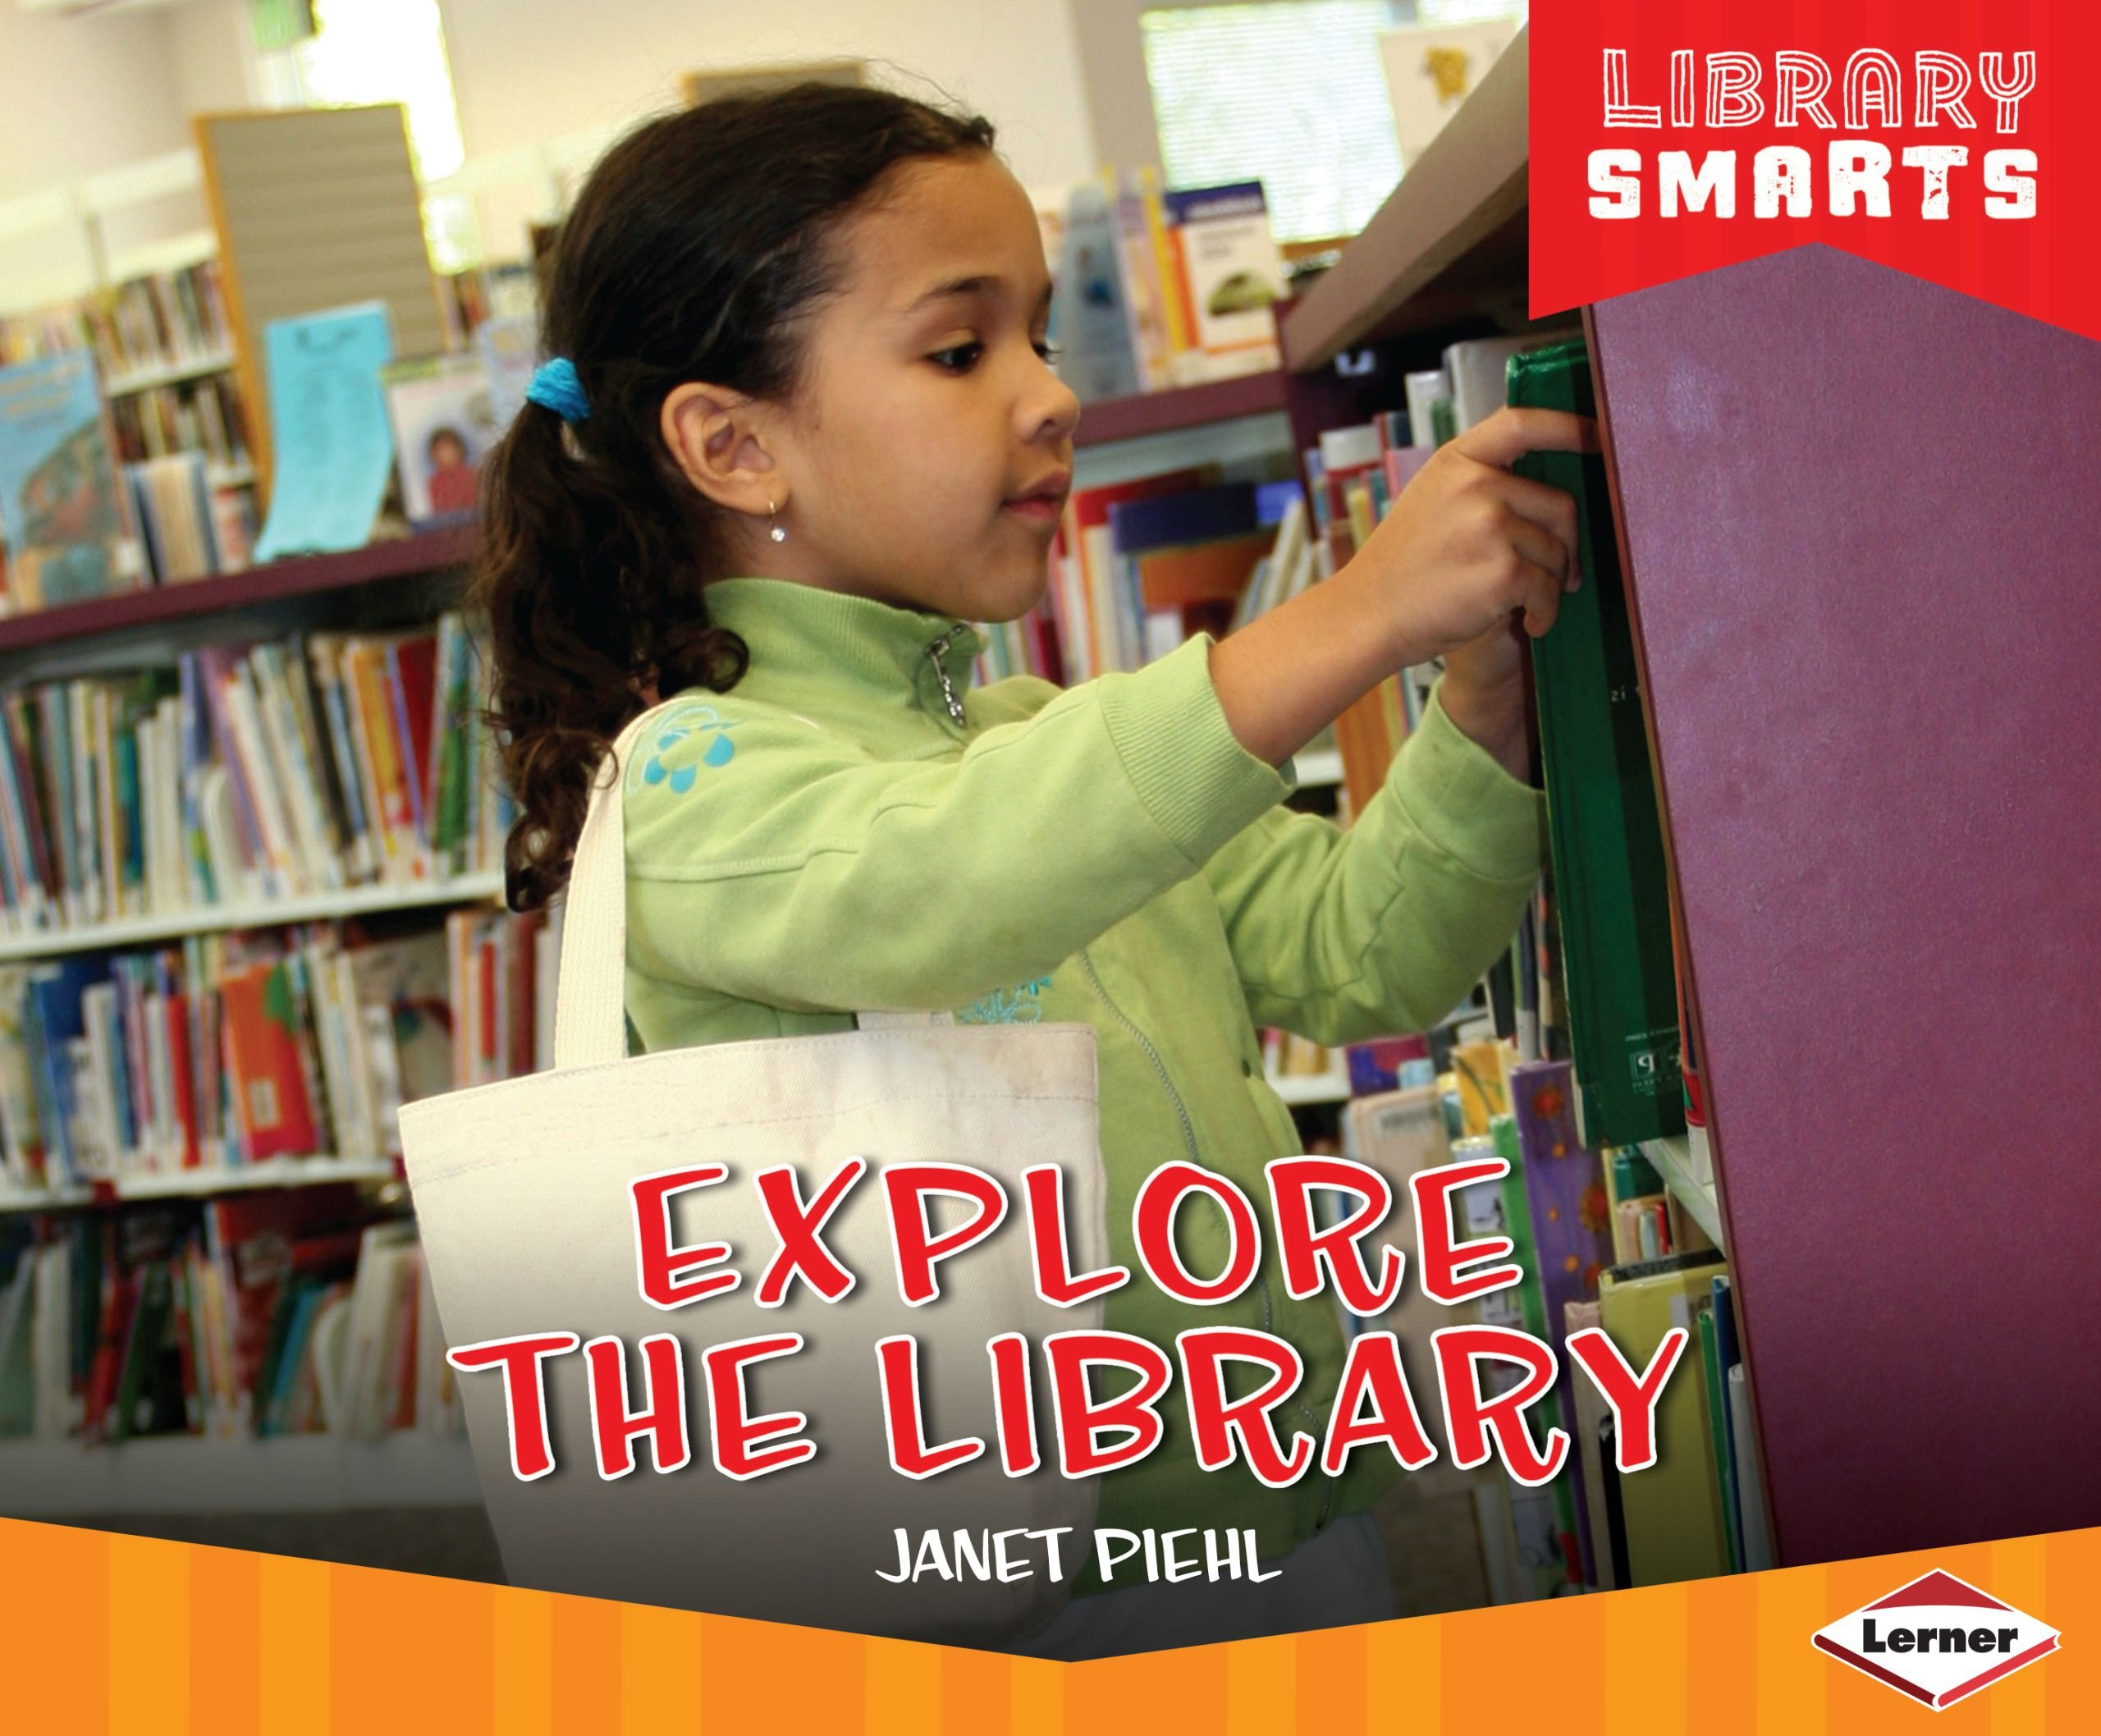 Explore the Library (Library Smarts)